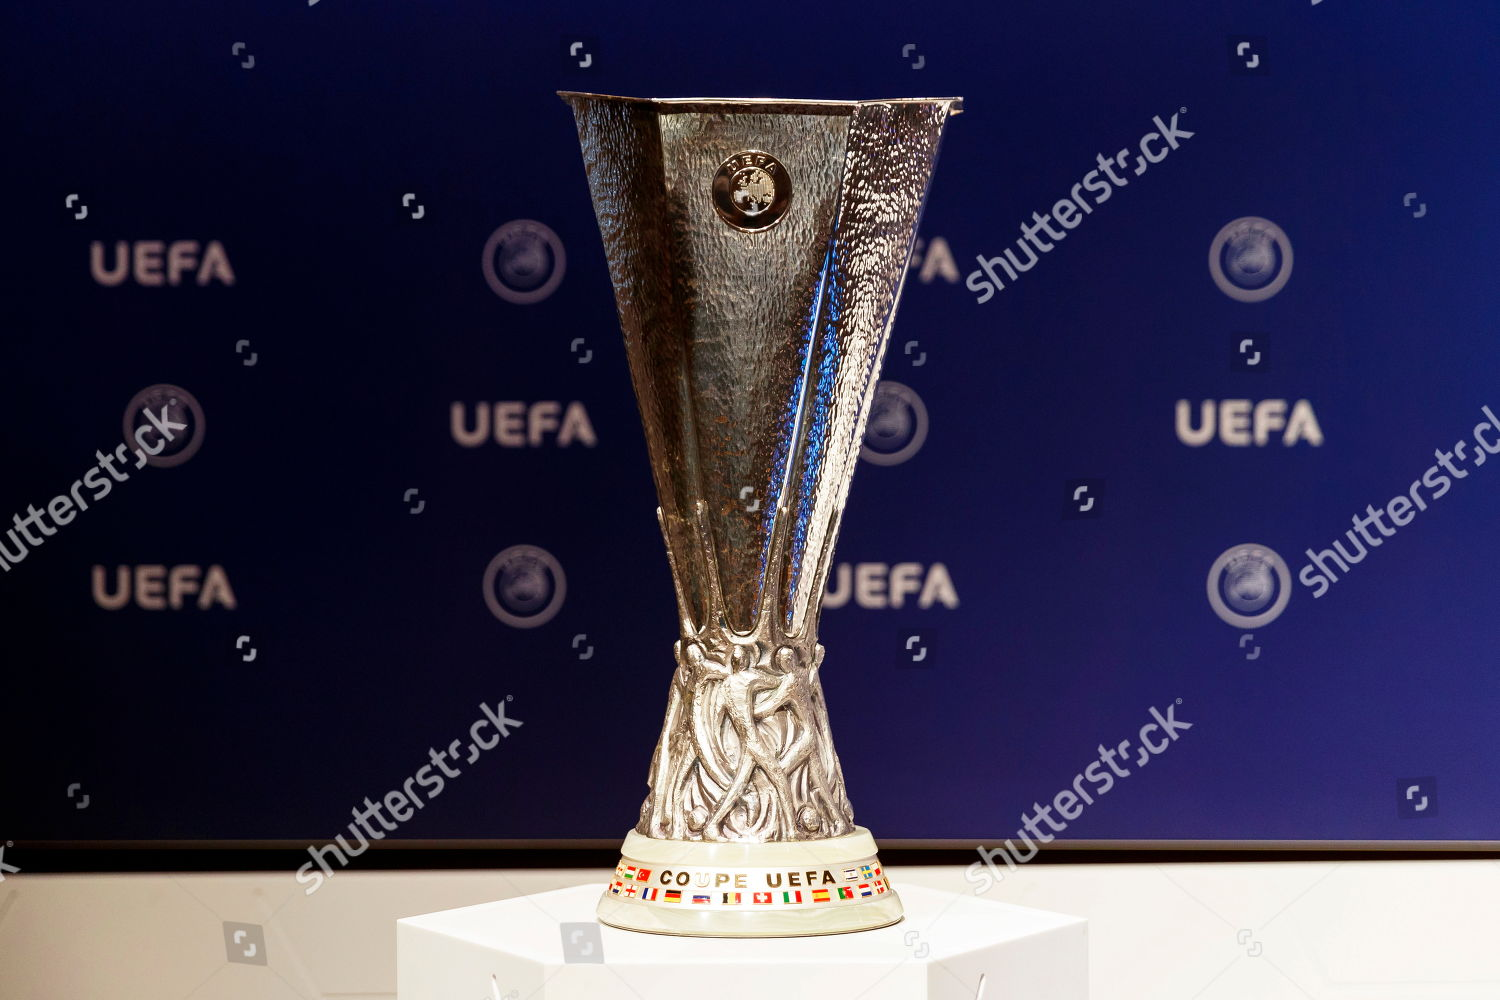 europa league trophy on display during draw editorial stock photo stock image shutterstock https www shutterstock com editorial image editorial uefa europa league 201920 preliminary round draw nyon switzerland 11 jun 2019 10302147b